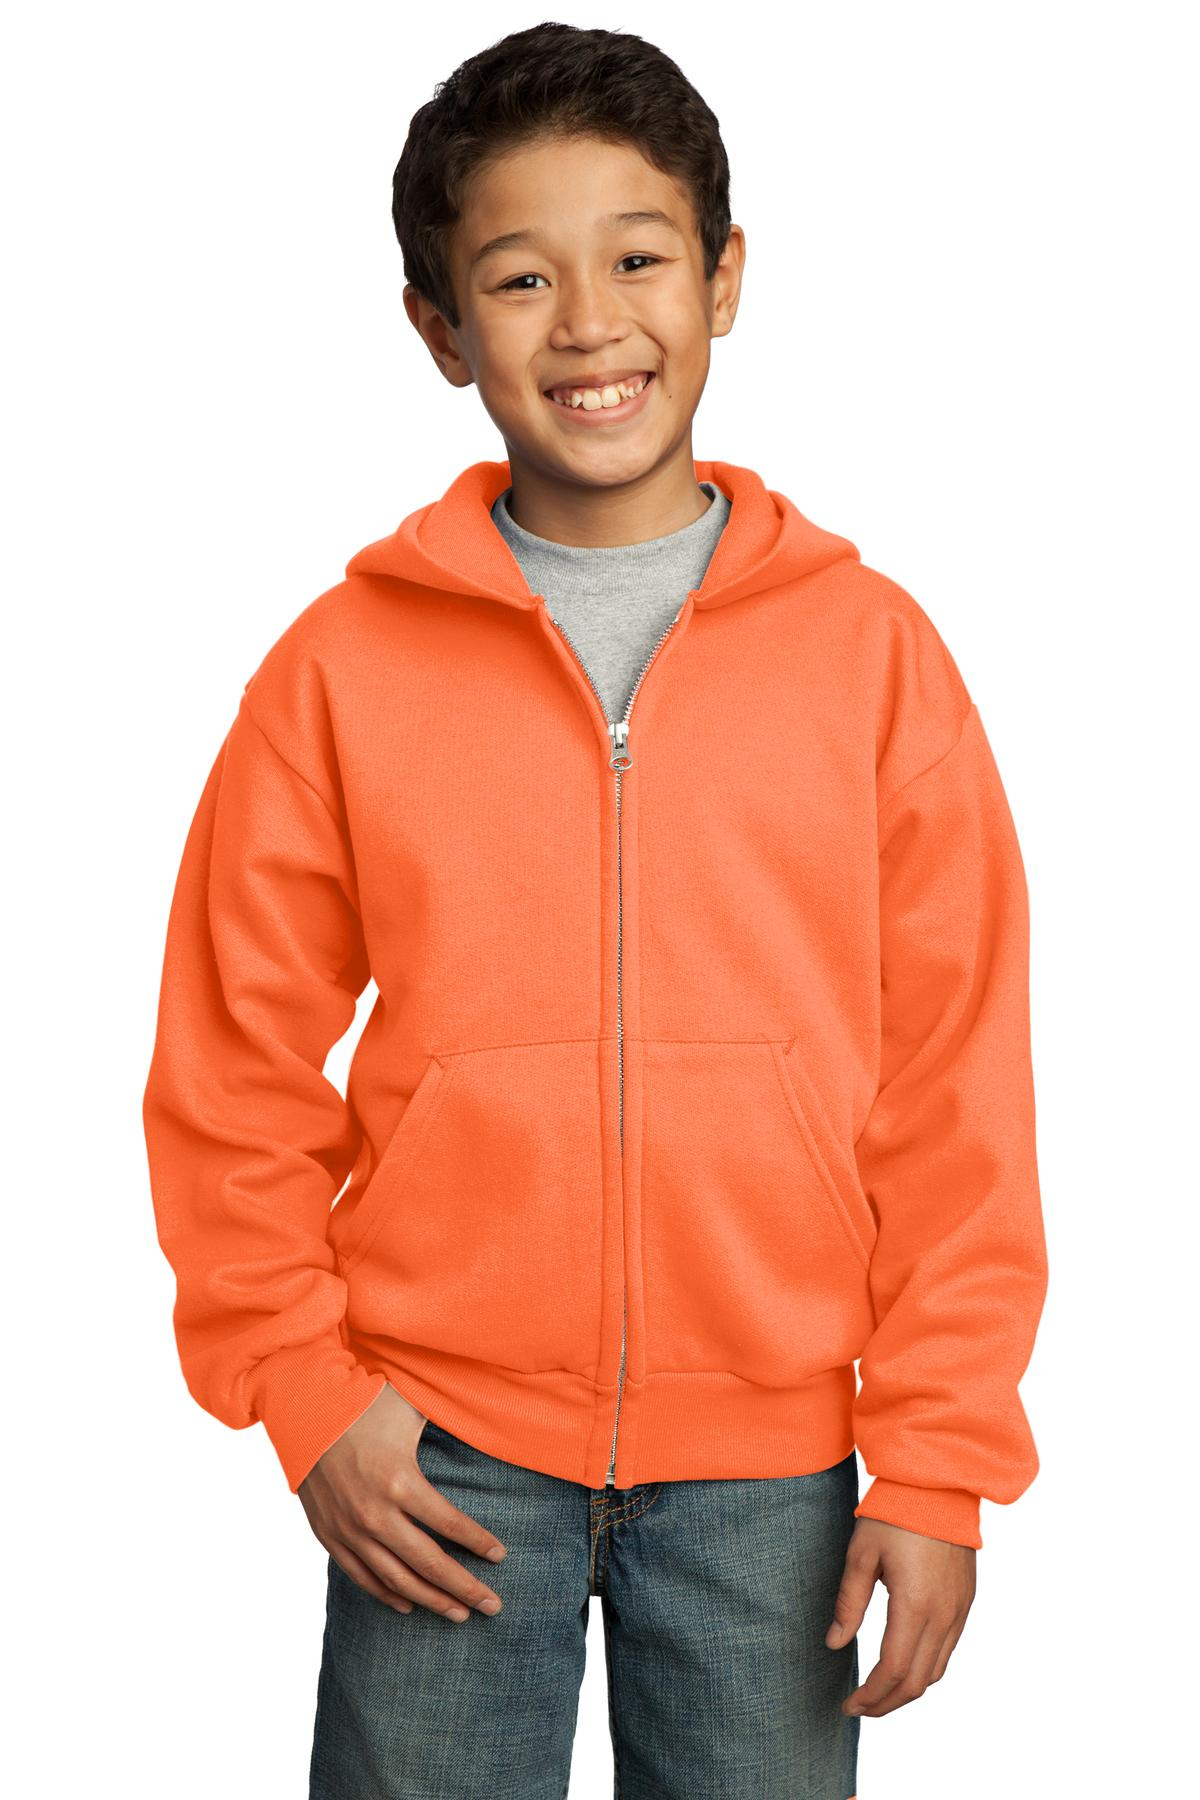 Port & Company ®  - Youth Core Fleece Full-Zip Hooded Sweatshirt.  PC90YZH - Neon Orange